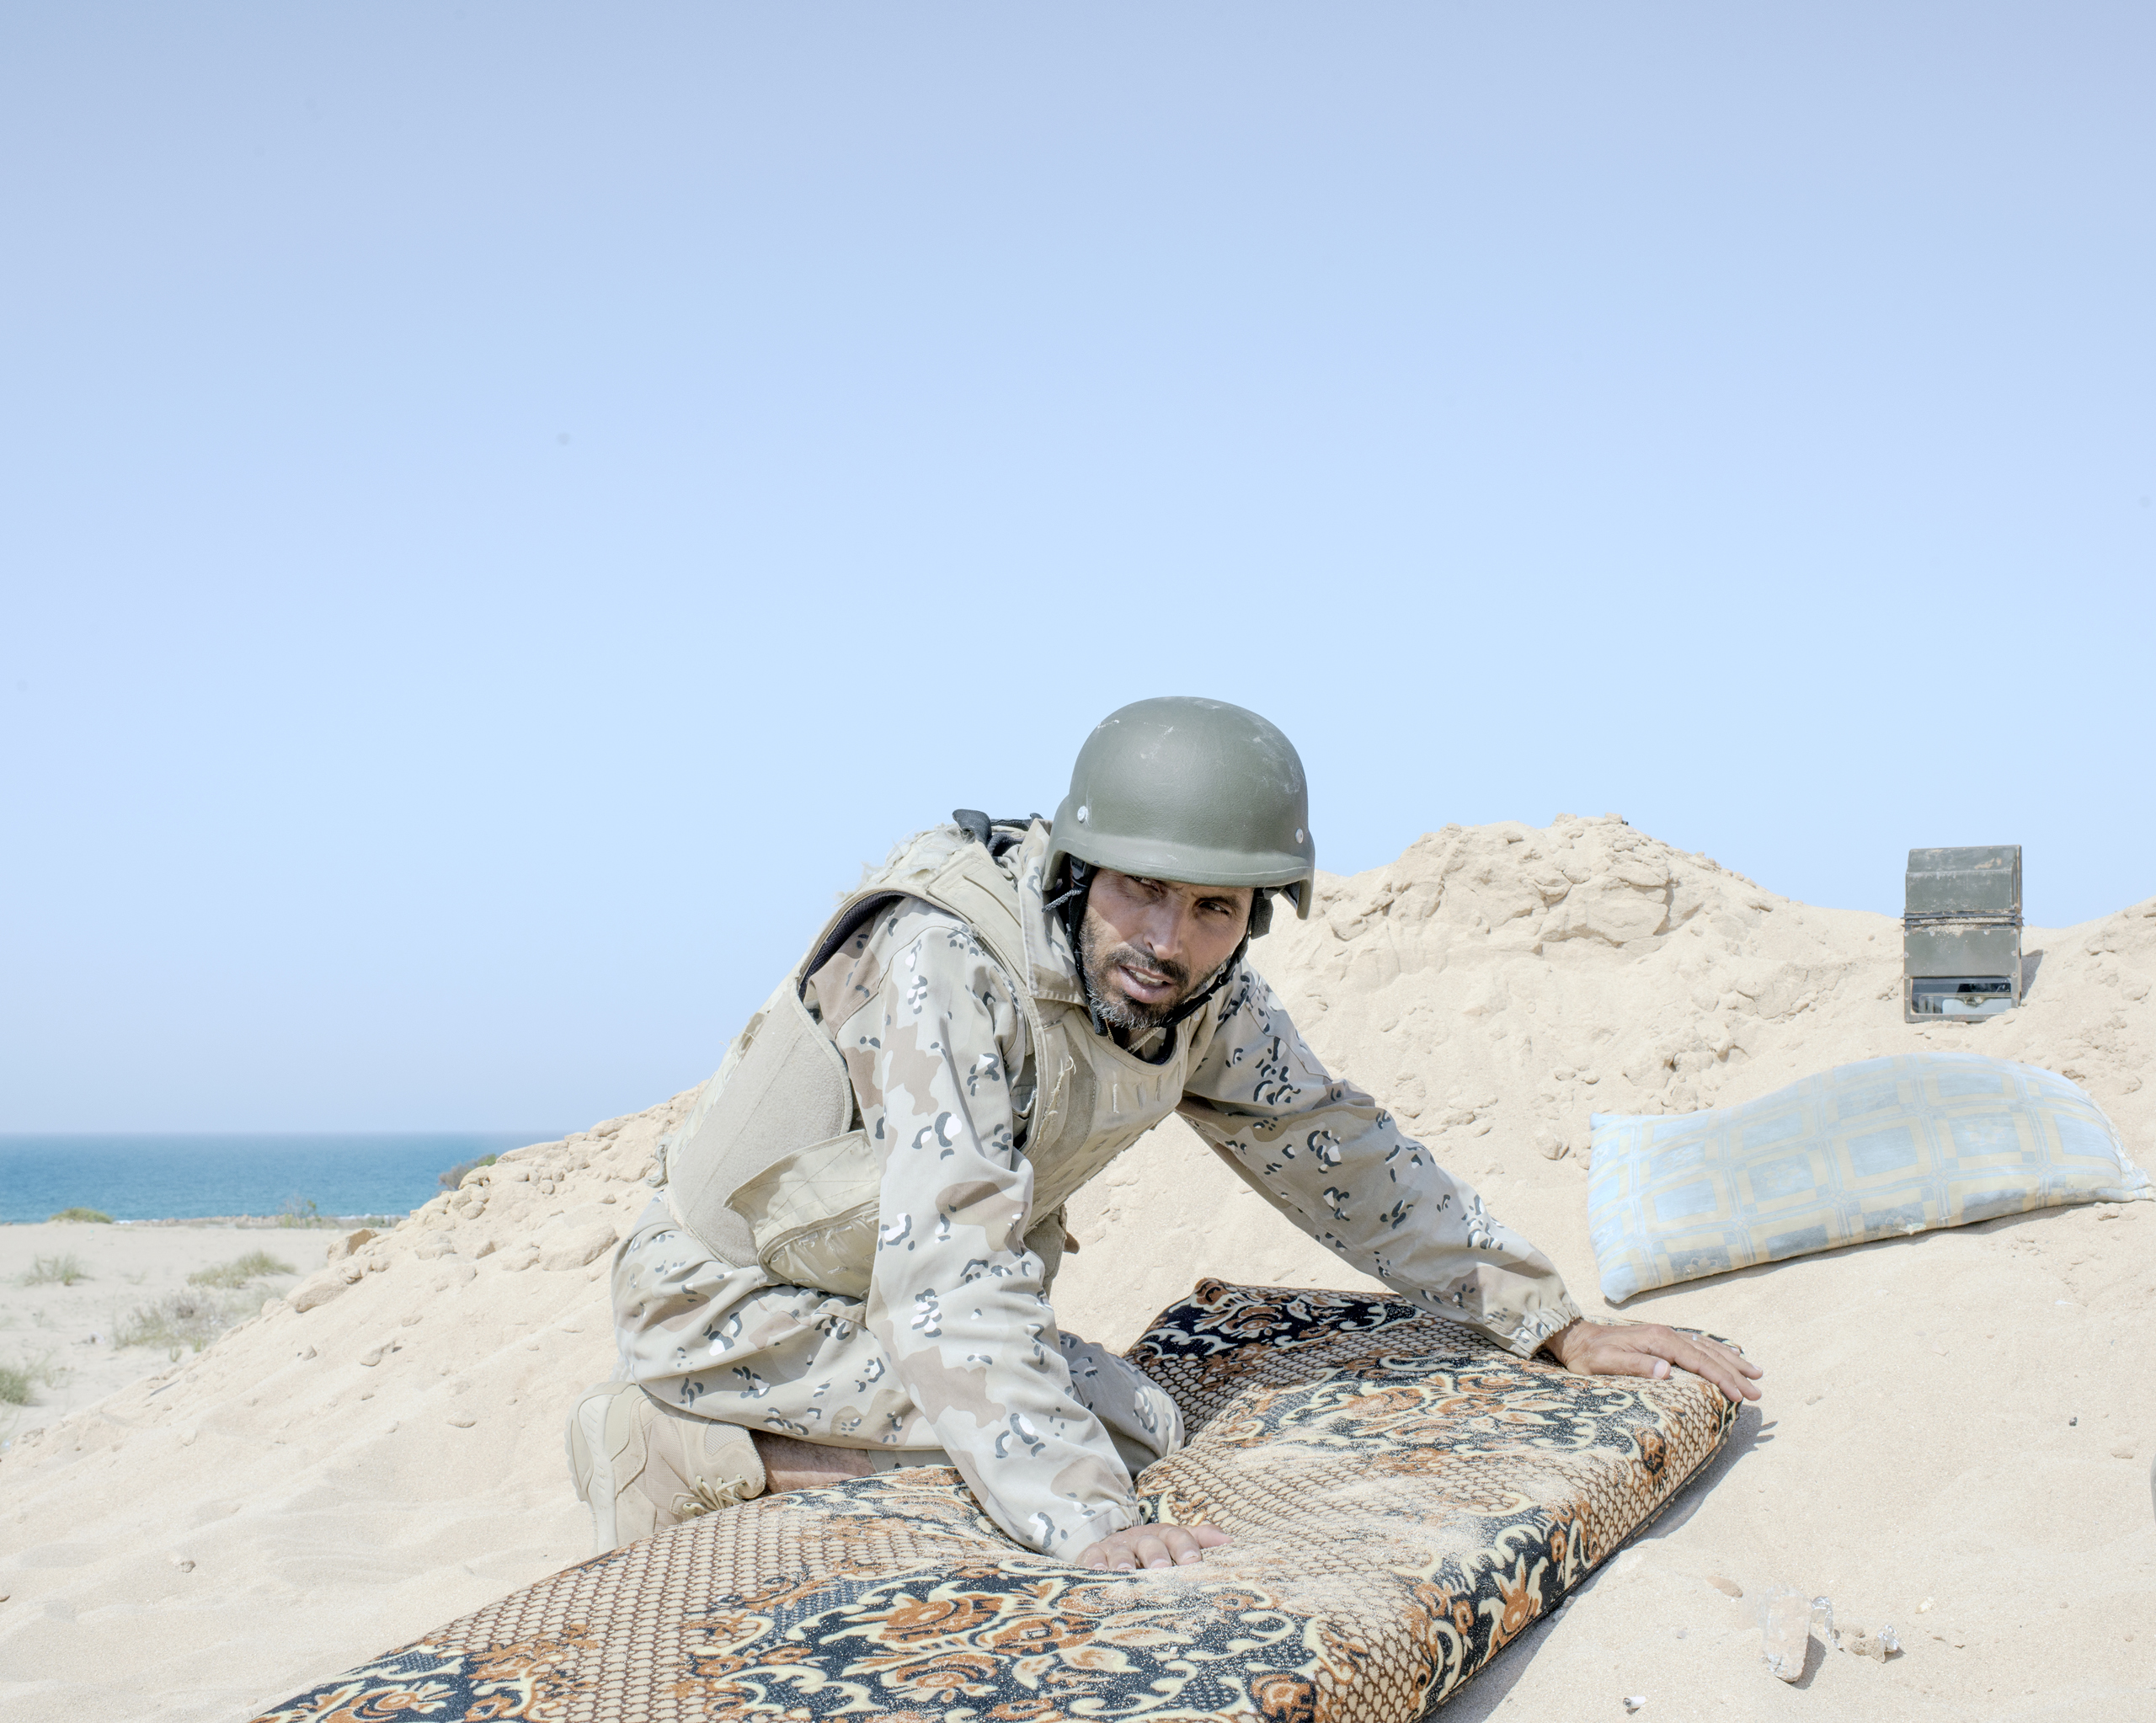 A Libyan spotter identifies ISIS positions on the westernmost frontline against ISIS on the Sirt seafront, July 2016.